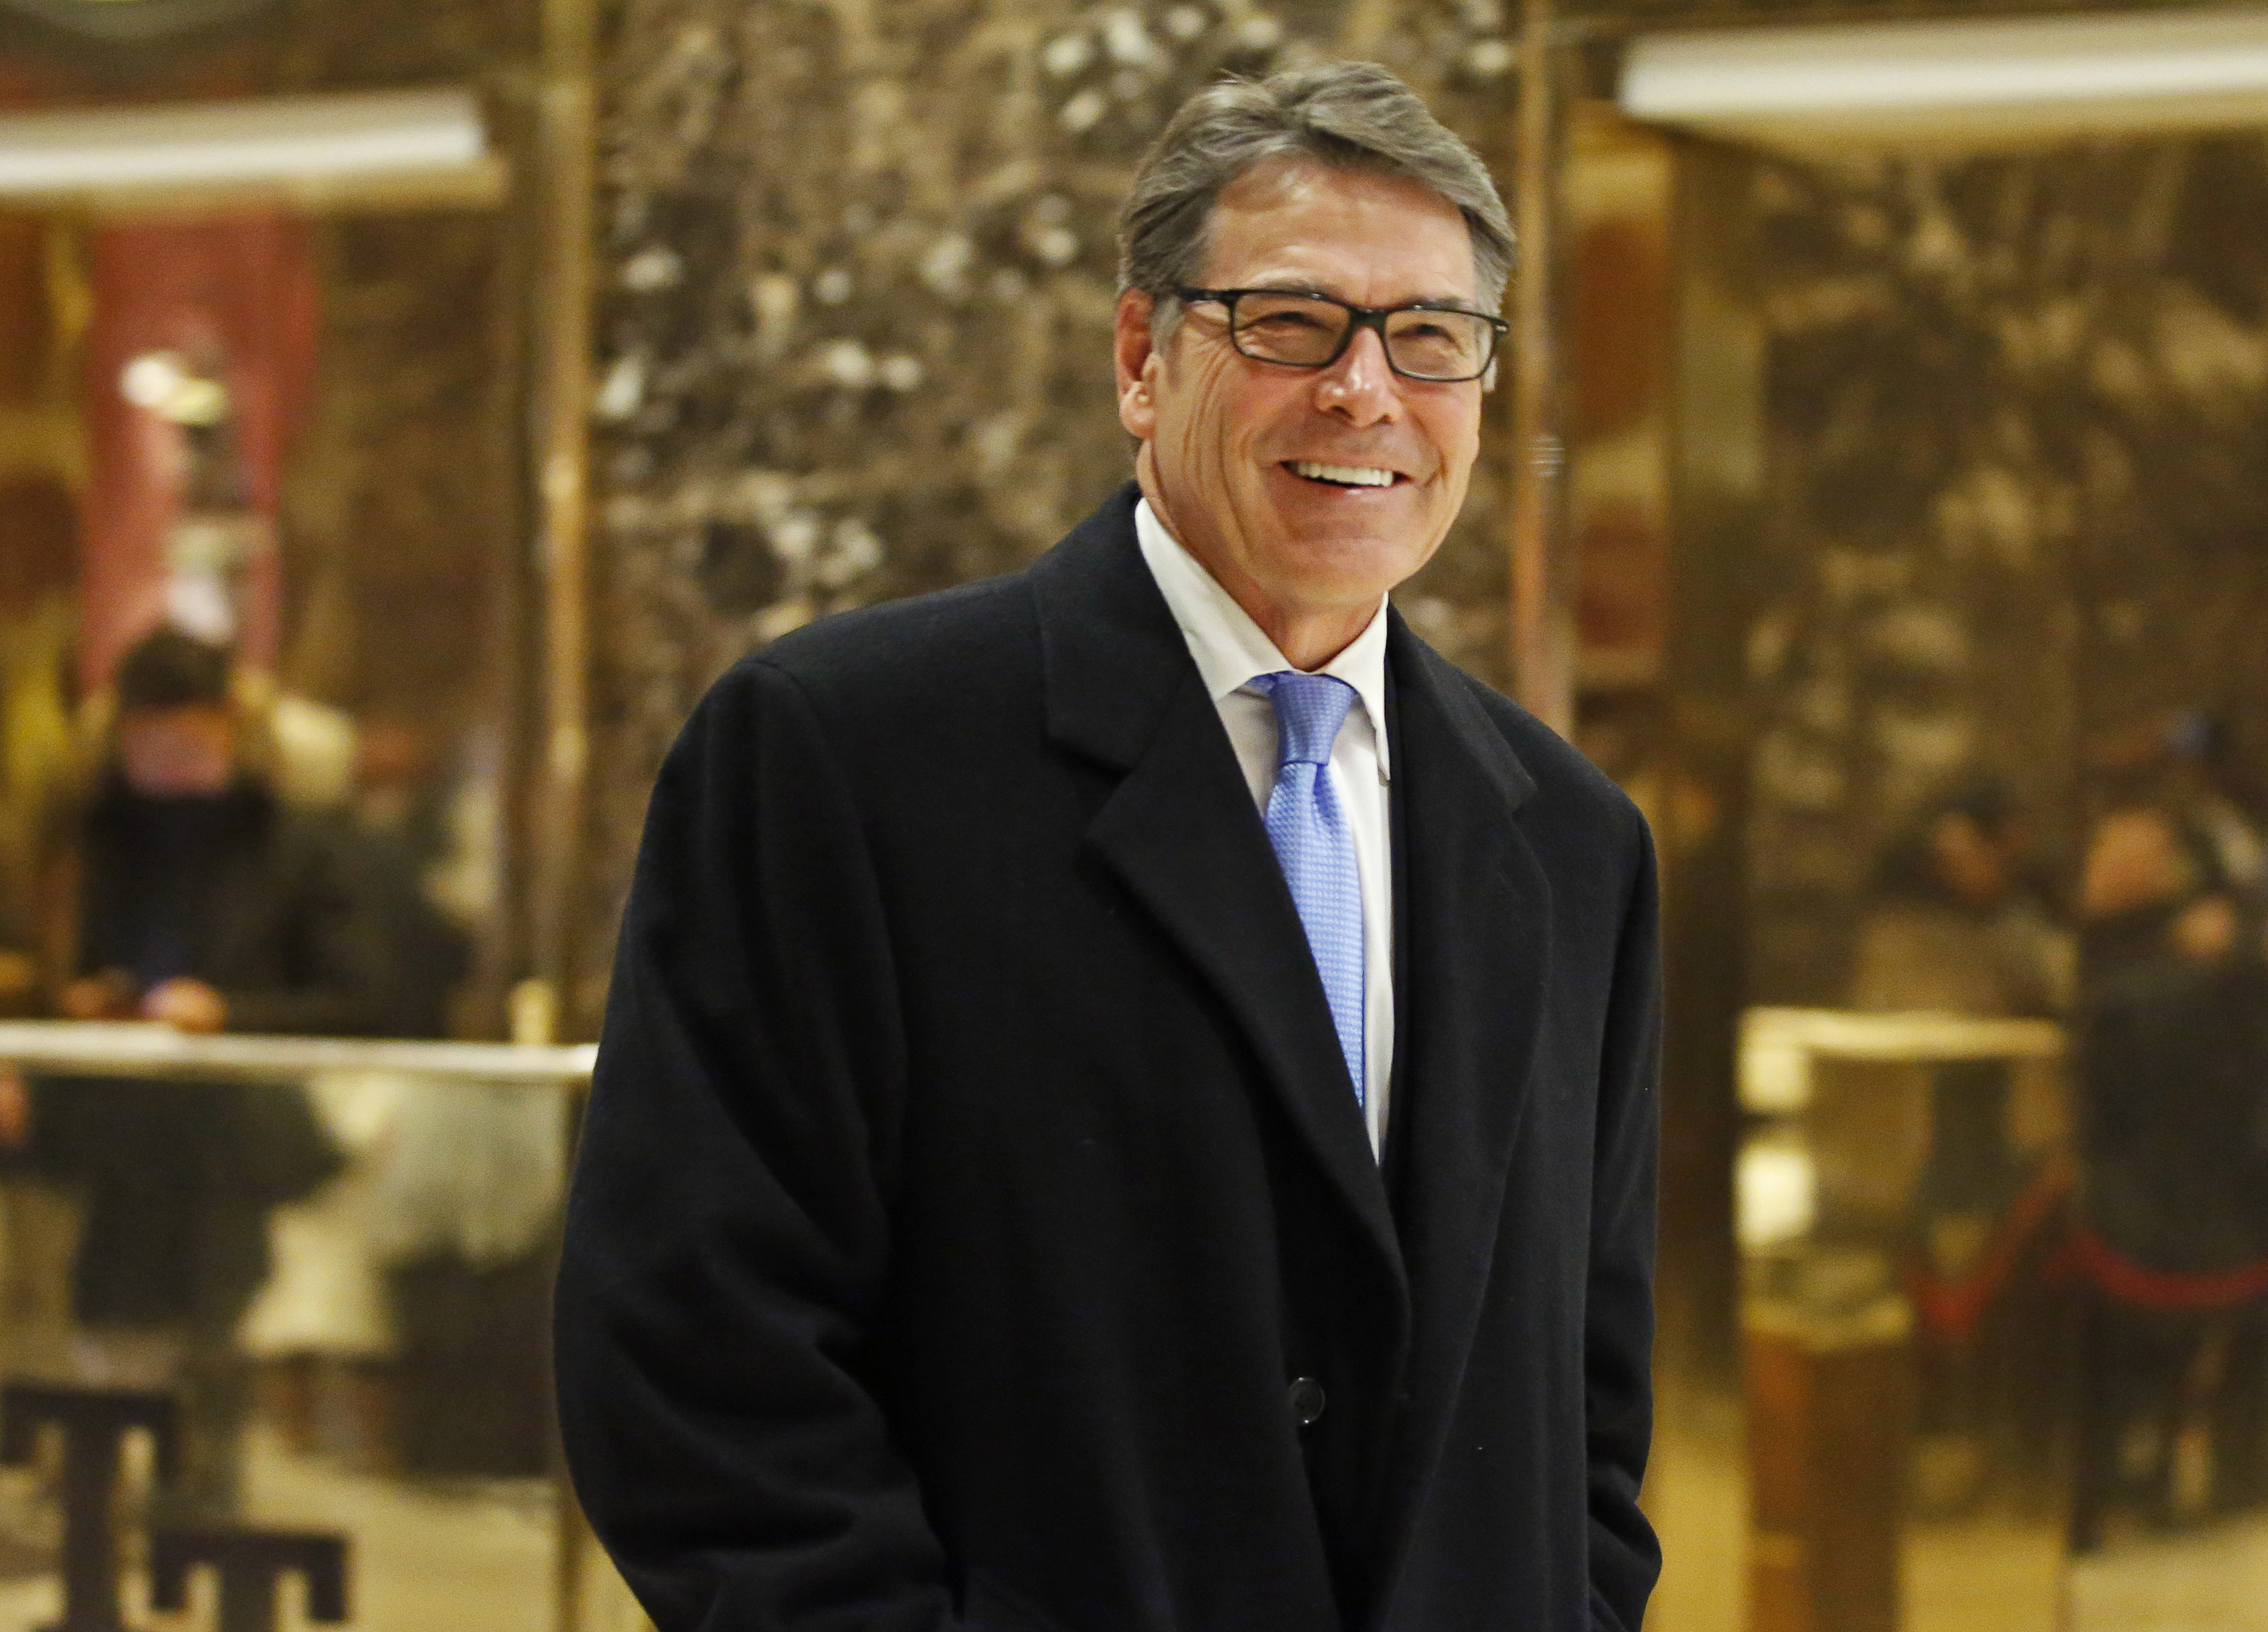 "Trump Energy Secretary FILE - In this Dec. 12, 2016, file photo, former Texas Gov. Rick Perry smiles as he leaves Trump Tower in New York. Perry was for ""all of the above"" on energy production before President Barack Obama embraced the strategy. Years before the Democratic president endorsed all types of energy production _ from oil and gas to renewable sources like wind and solar power _ Perry was putting the policy into practice in Texas. (AP Photo/Kathy Willens, File)"